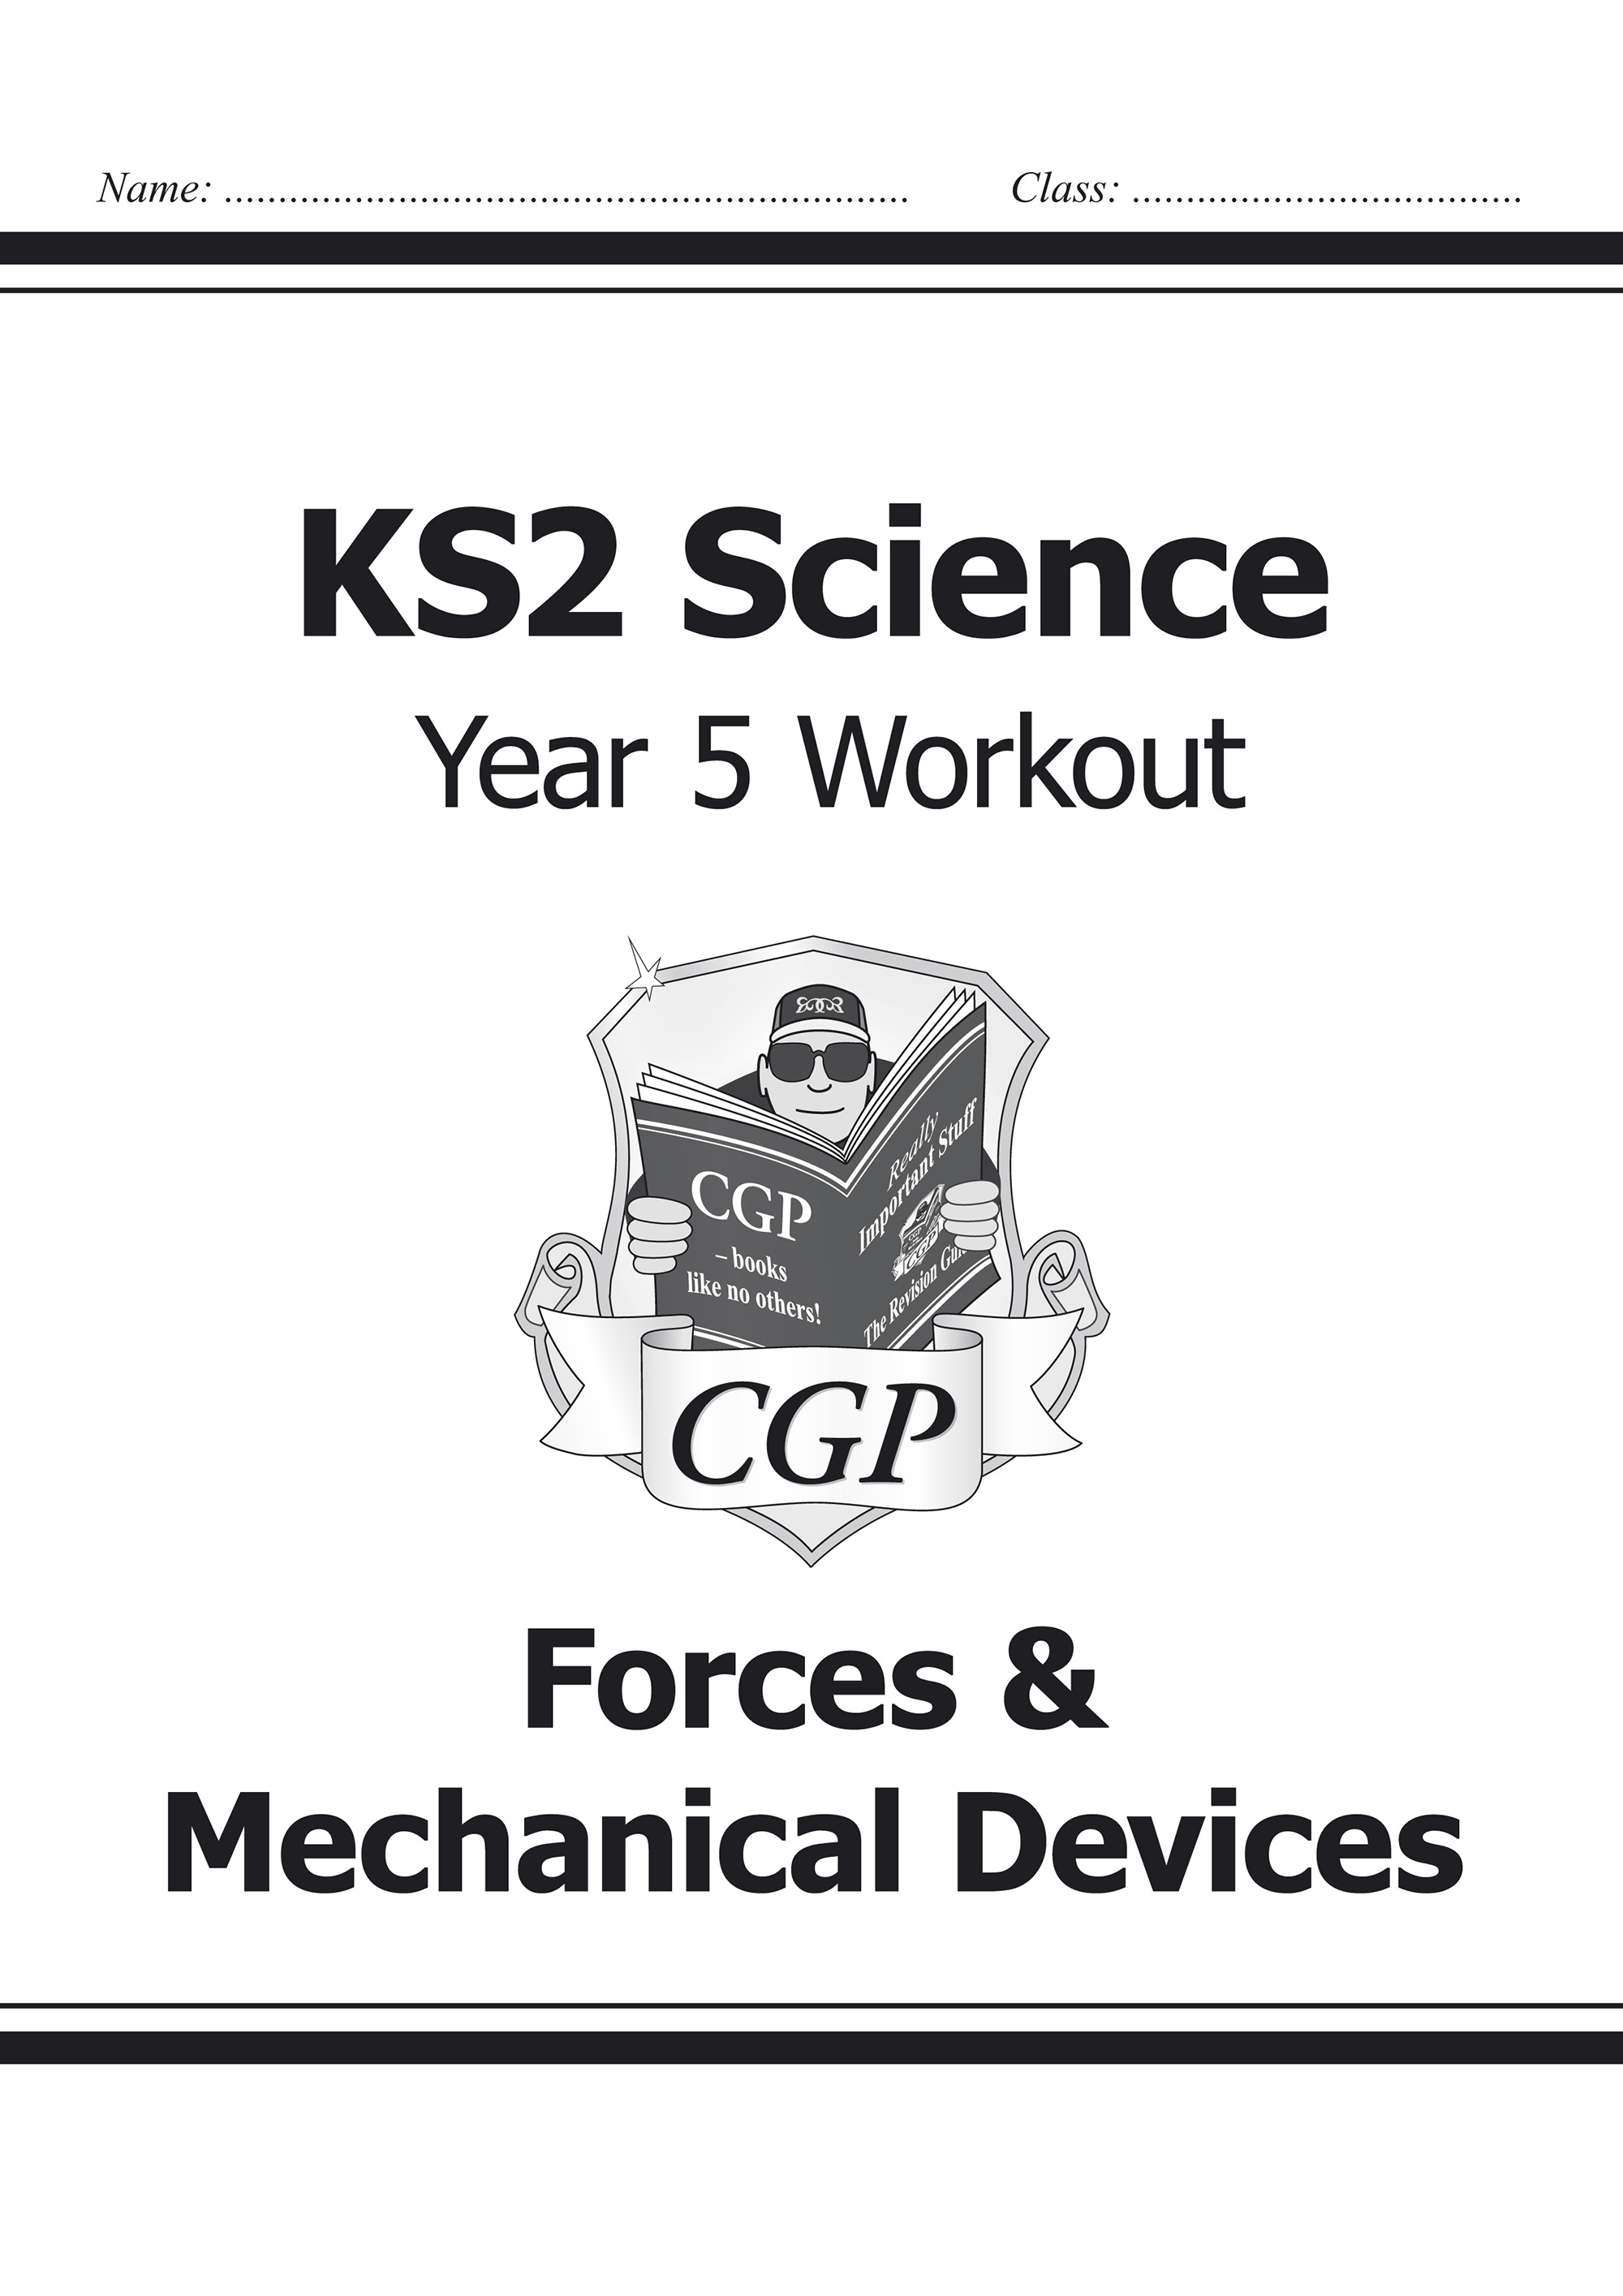 S5D22 - KS2 Science Year Five Workout: Forces & Mechanical Devices